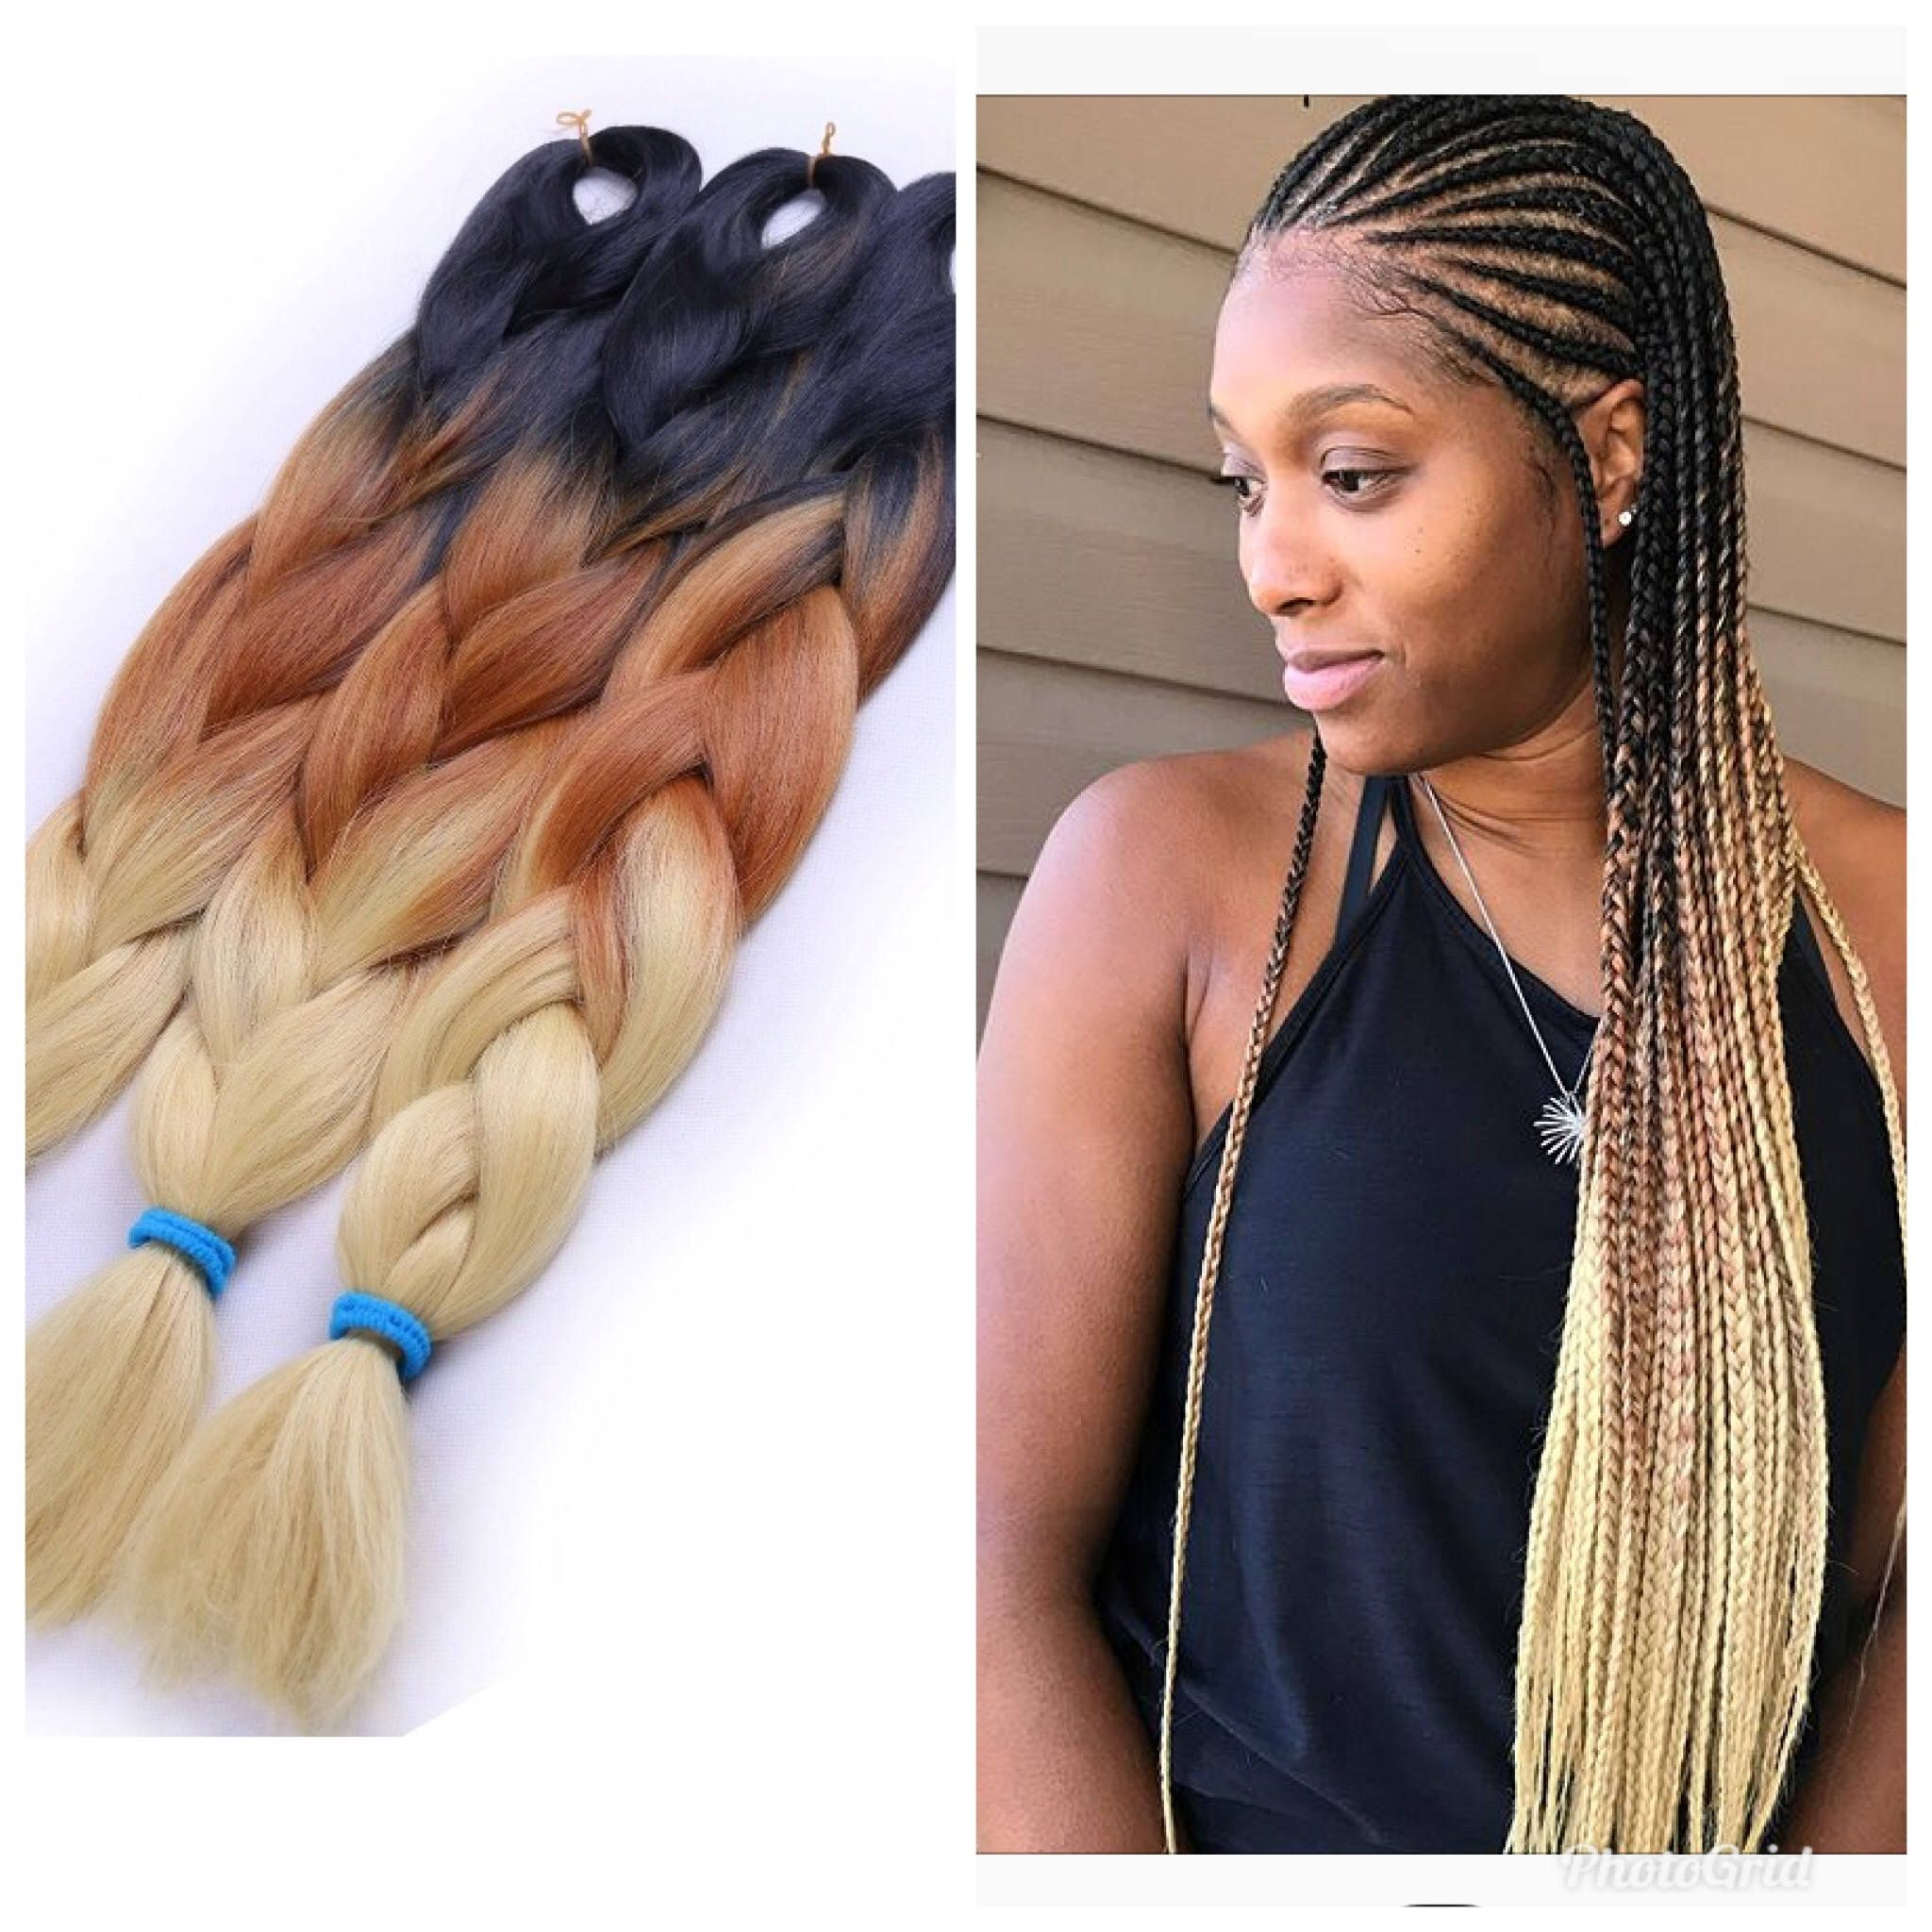 Jumbo Braiding Hair Black Brown Gold 5pcs Jumbo Braids Hair Extension Ombre Colors For Box Braids Senegalese Twist Jumbo Braiding Hair Hair Styles Ombre Hair